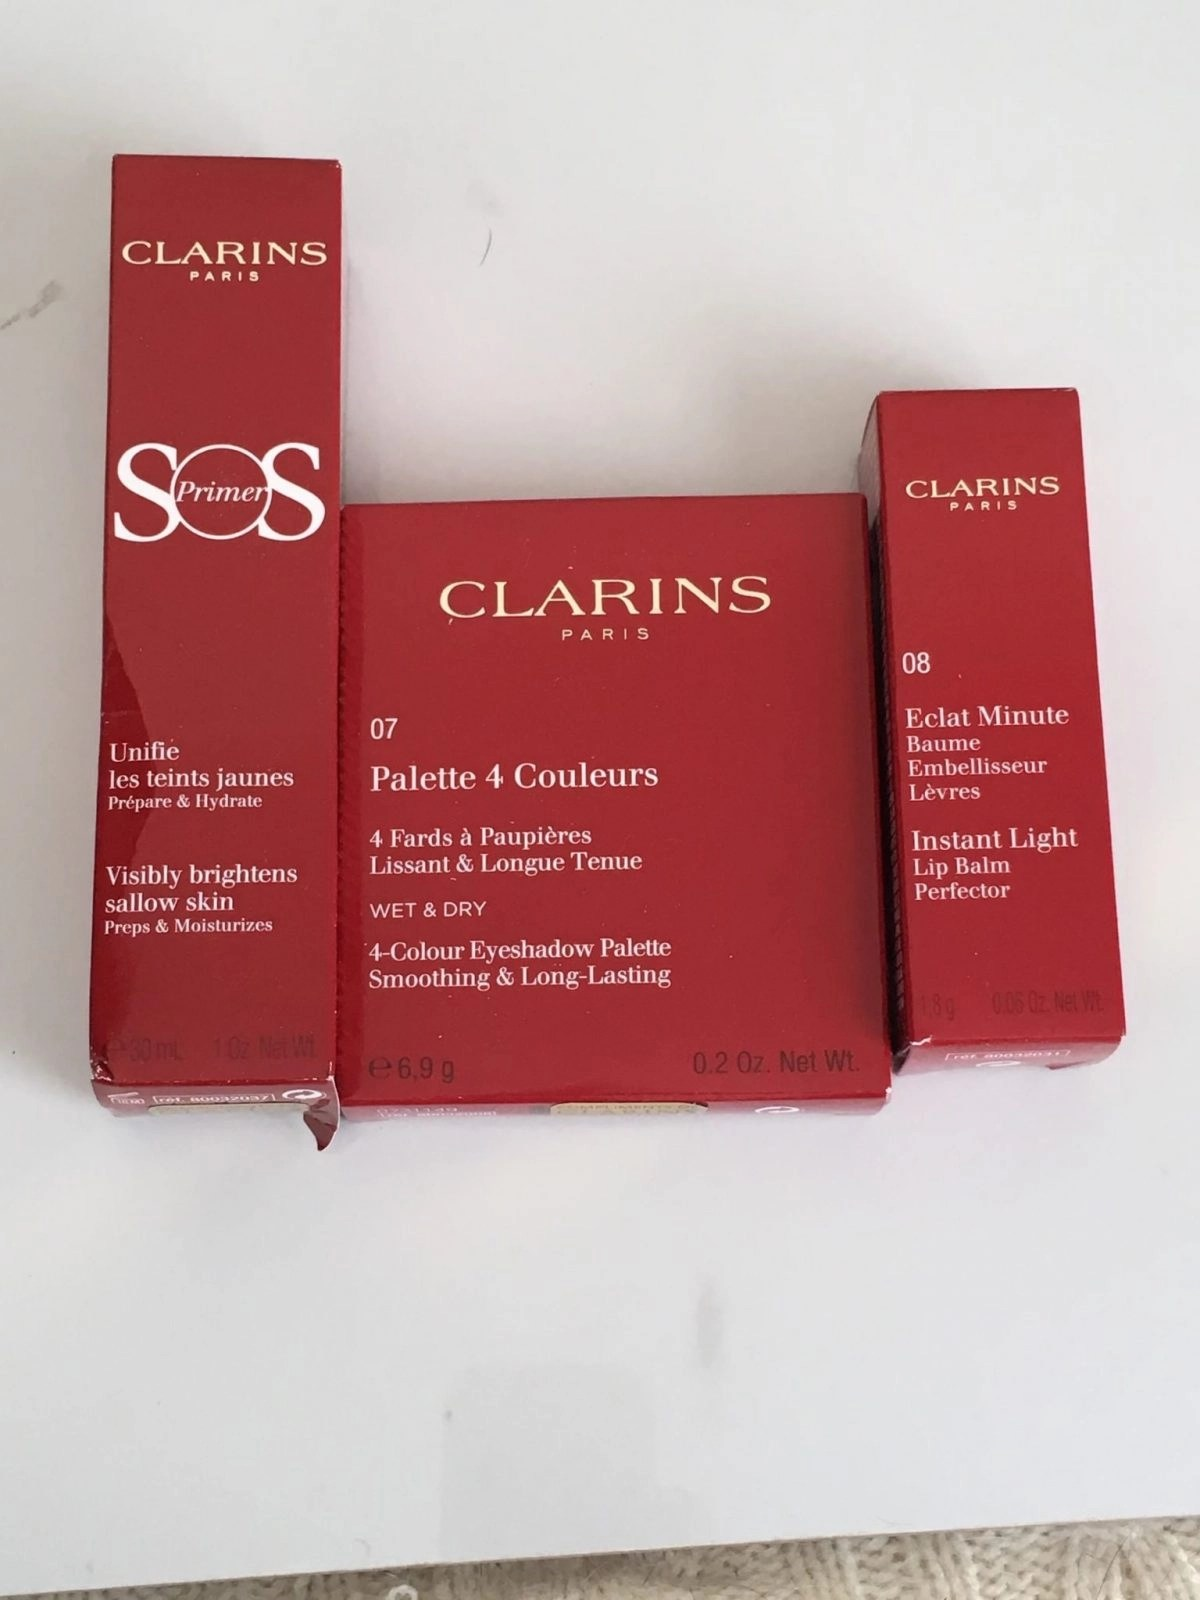 New Clarins Permanent Products in packaging